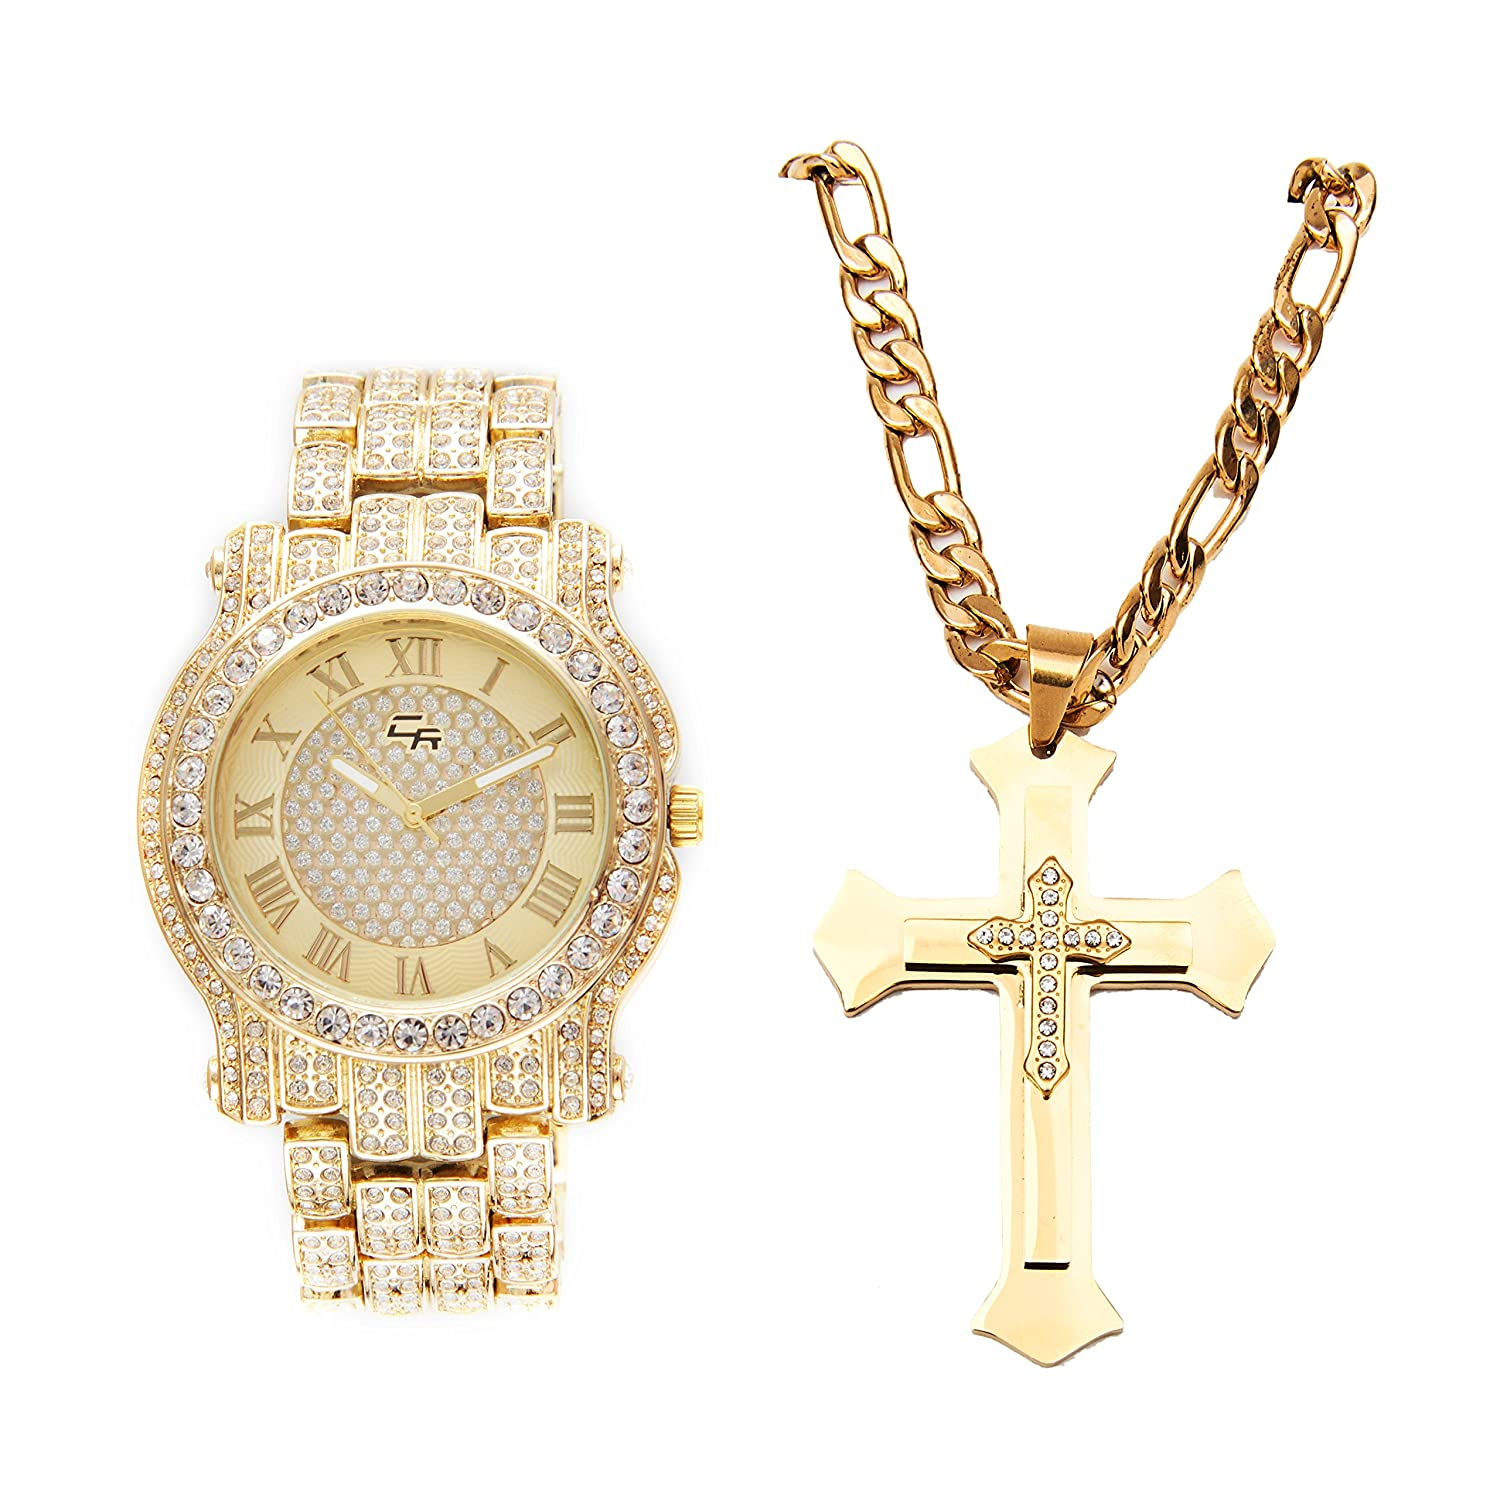 Best Hip Hop Rappers Iced Out Stainless Steel Gold Cross and Chain with Luxurious Mens Metal Bling Watch. Watch dial is an Easy Reader with Elegant Roman ...